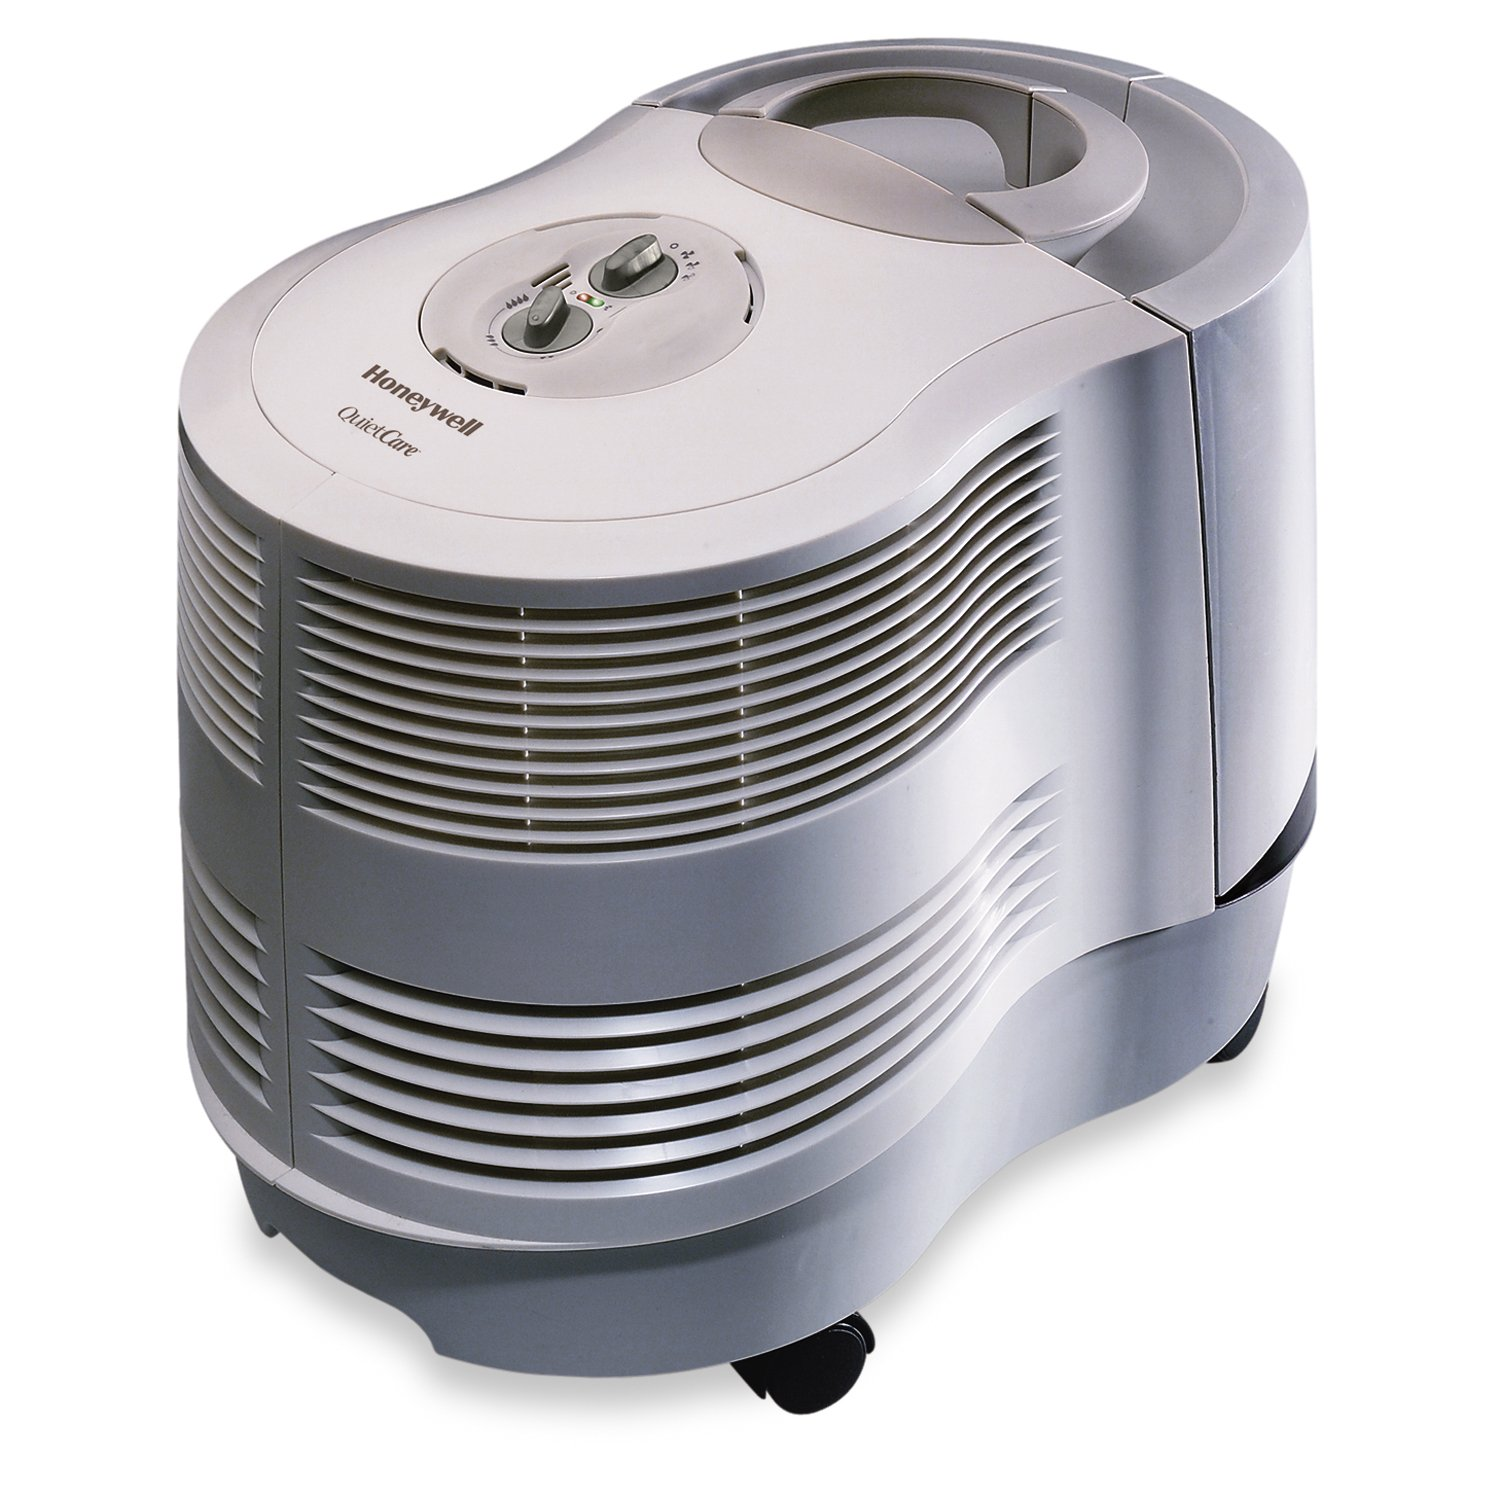 Honeywell HCM-6009 QuietCare Humidifier Review